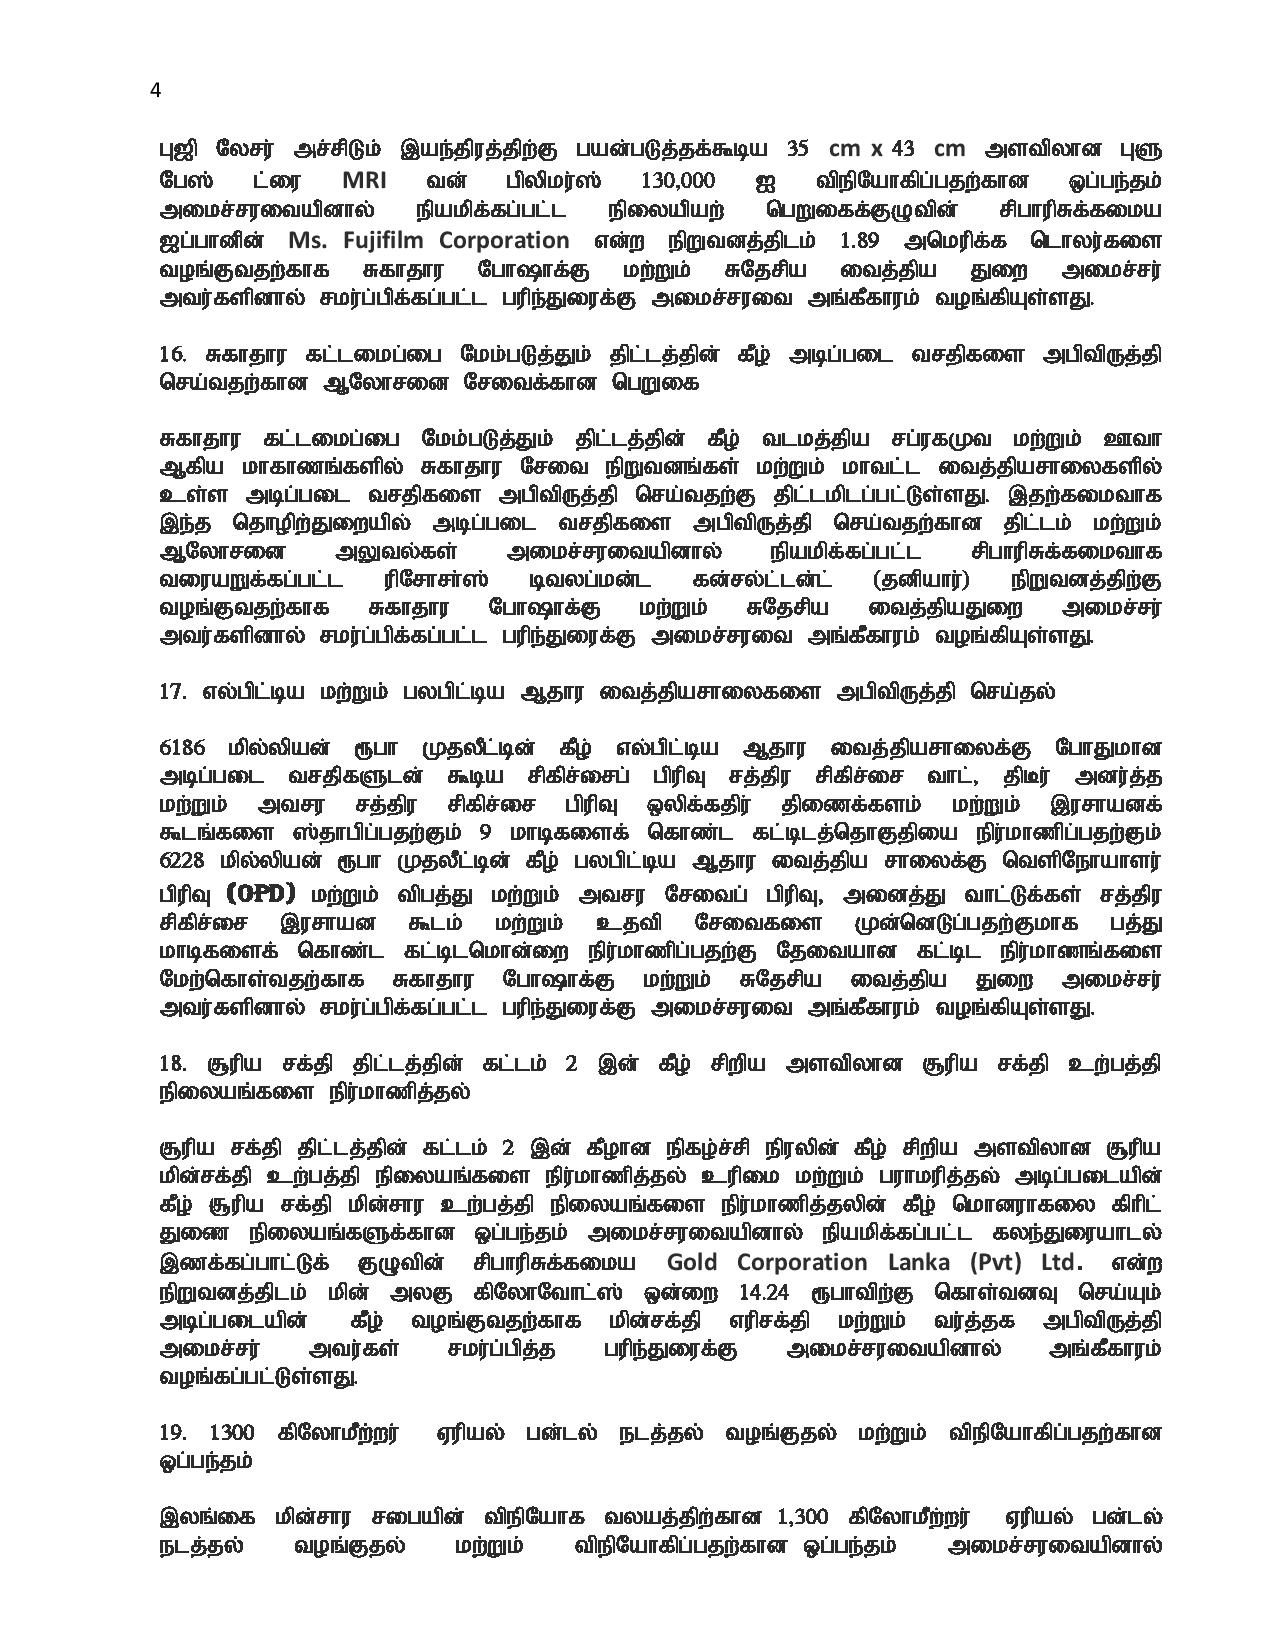 Cabinet Decisions on 05.11.2019 Tamil page 004